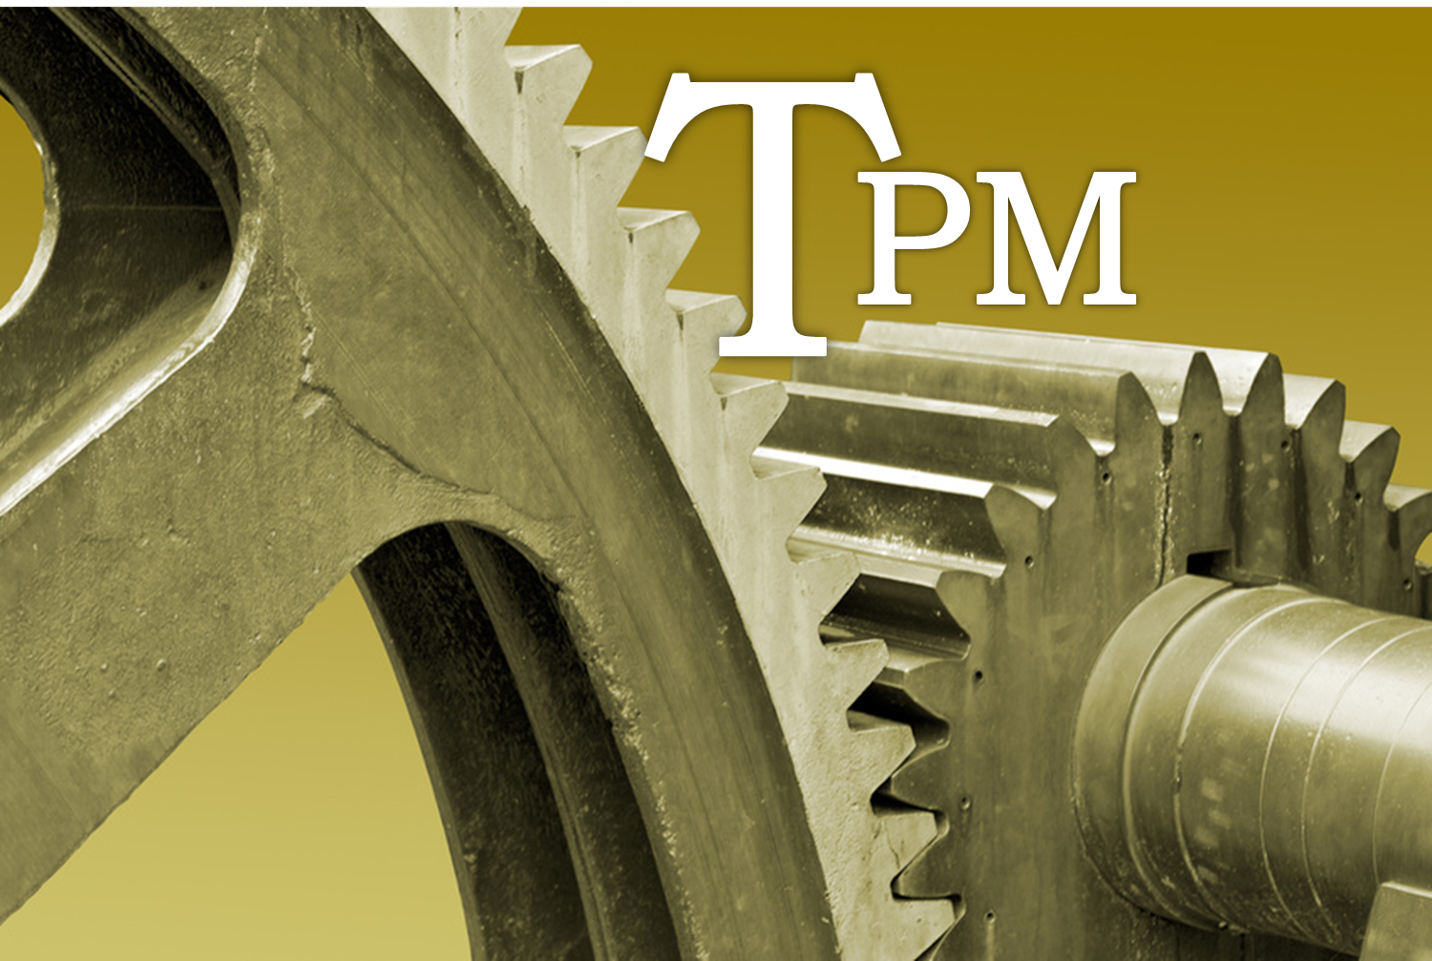 TPM, How to implement TPM